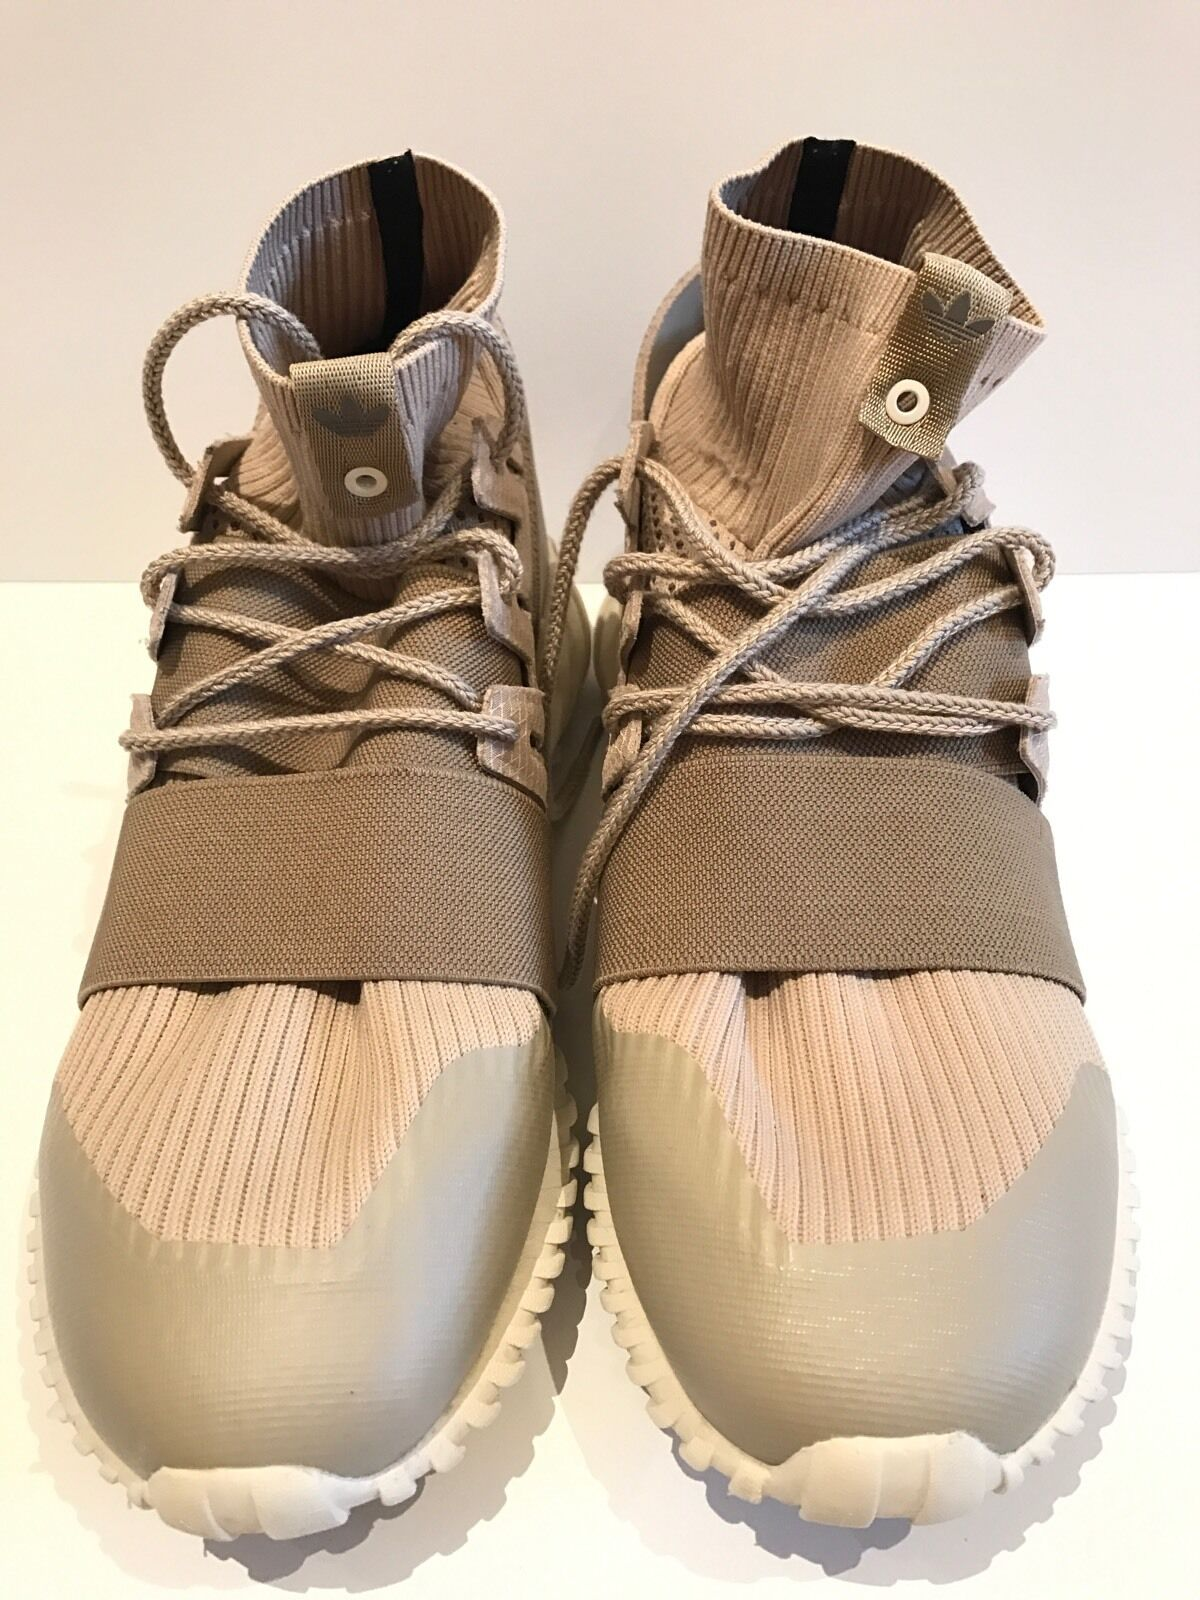 Adidas Tubular Doom special forces CONSORTIUM 11,5 US US US 11 UK W RECEIPT AUTHENTIC 8e5f9a